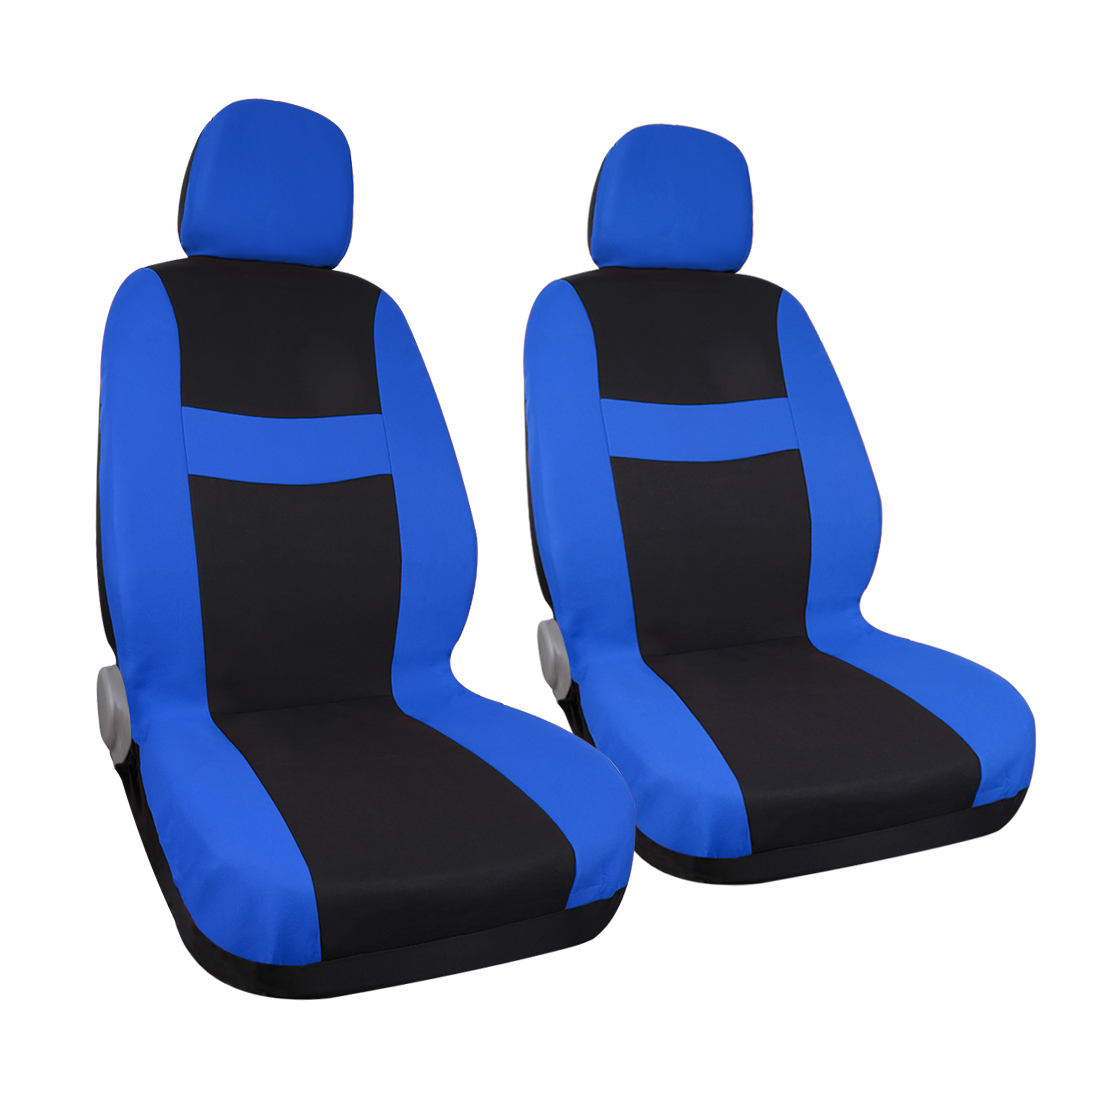 blue black car seat covers with headrest fit for auto truck ebay. Black Bedroom Furniture Sets. Home Design Ideas